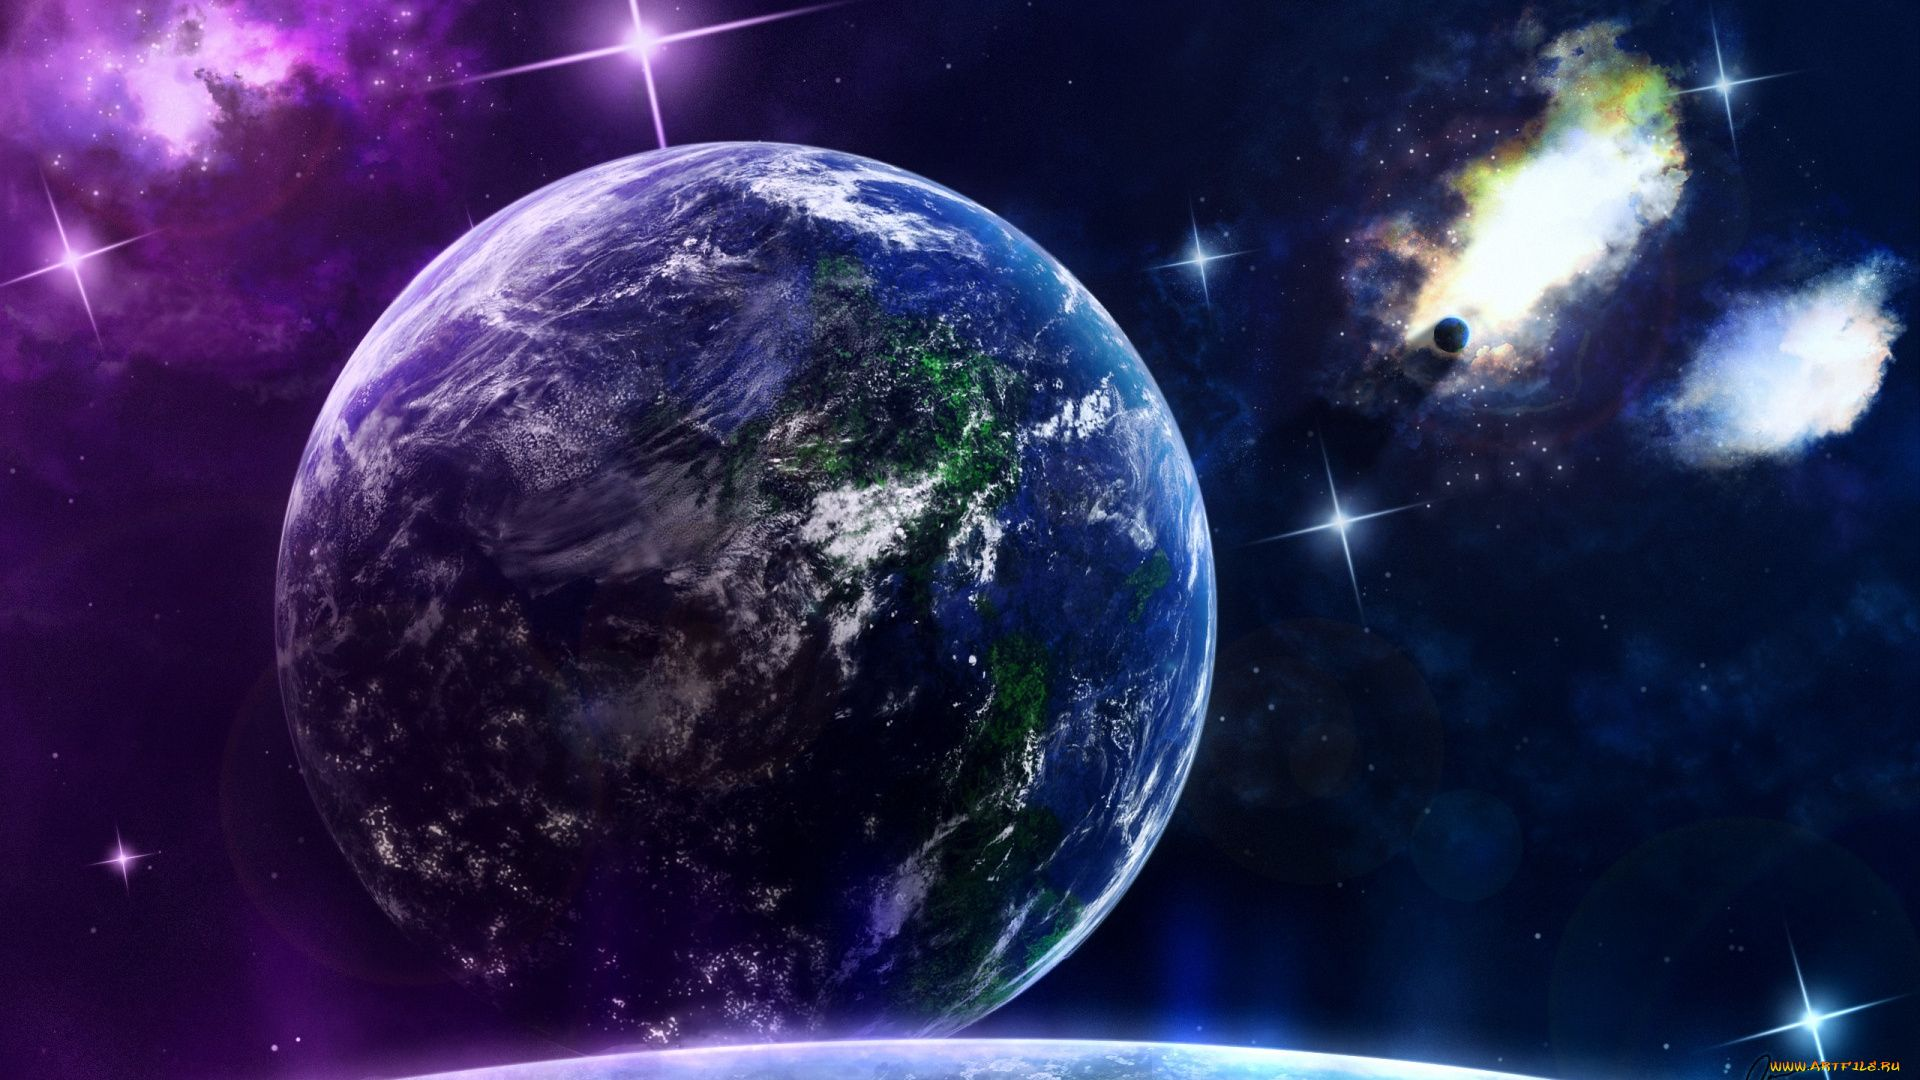 Earth wallpaper for pc